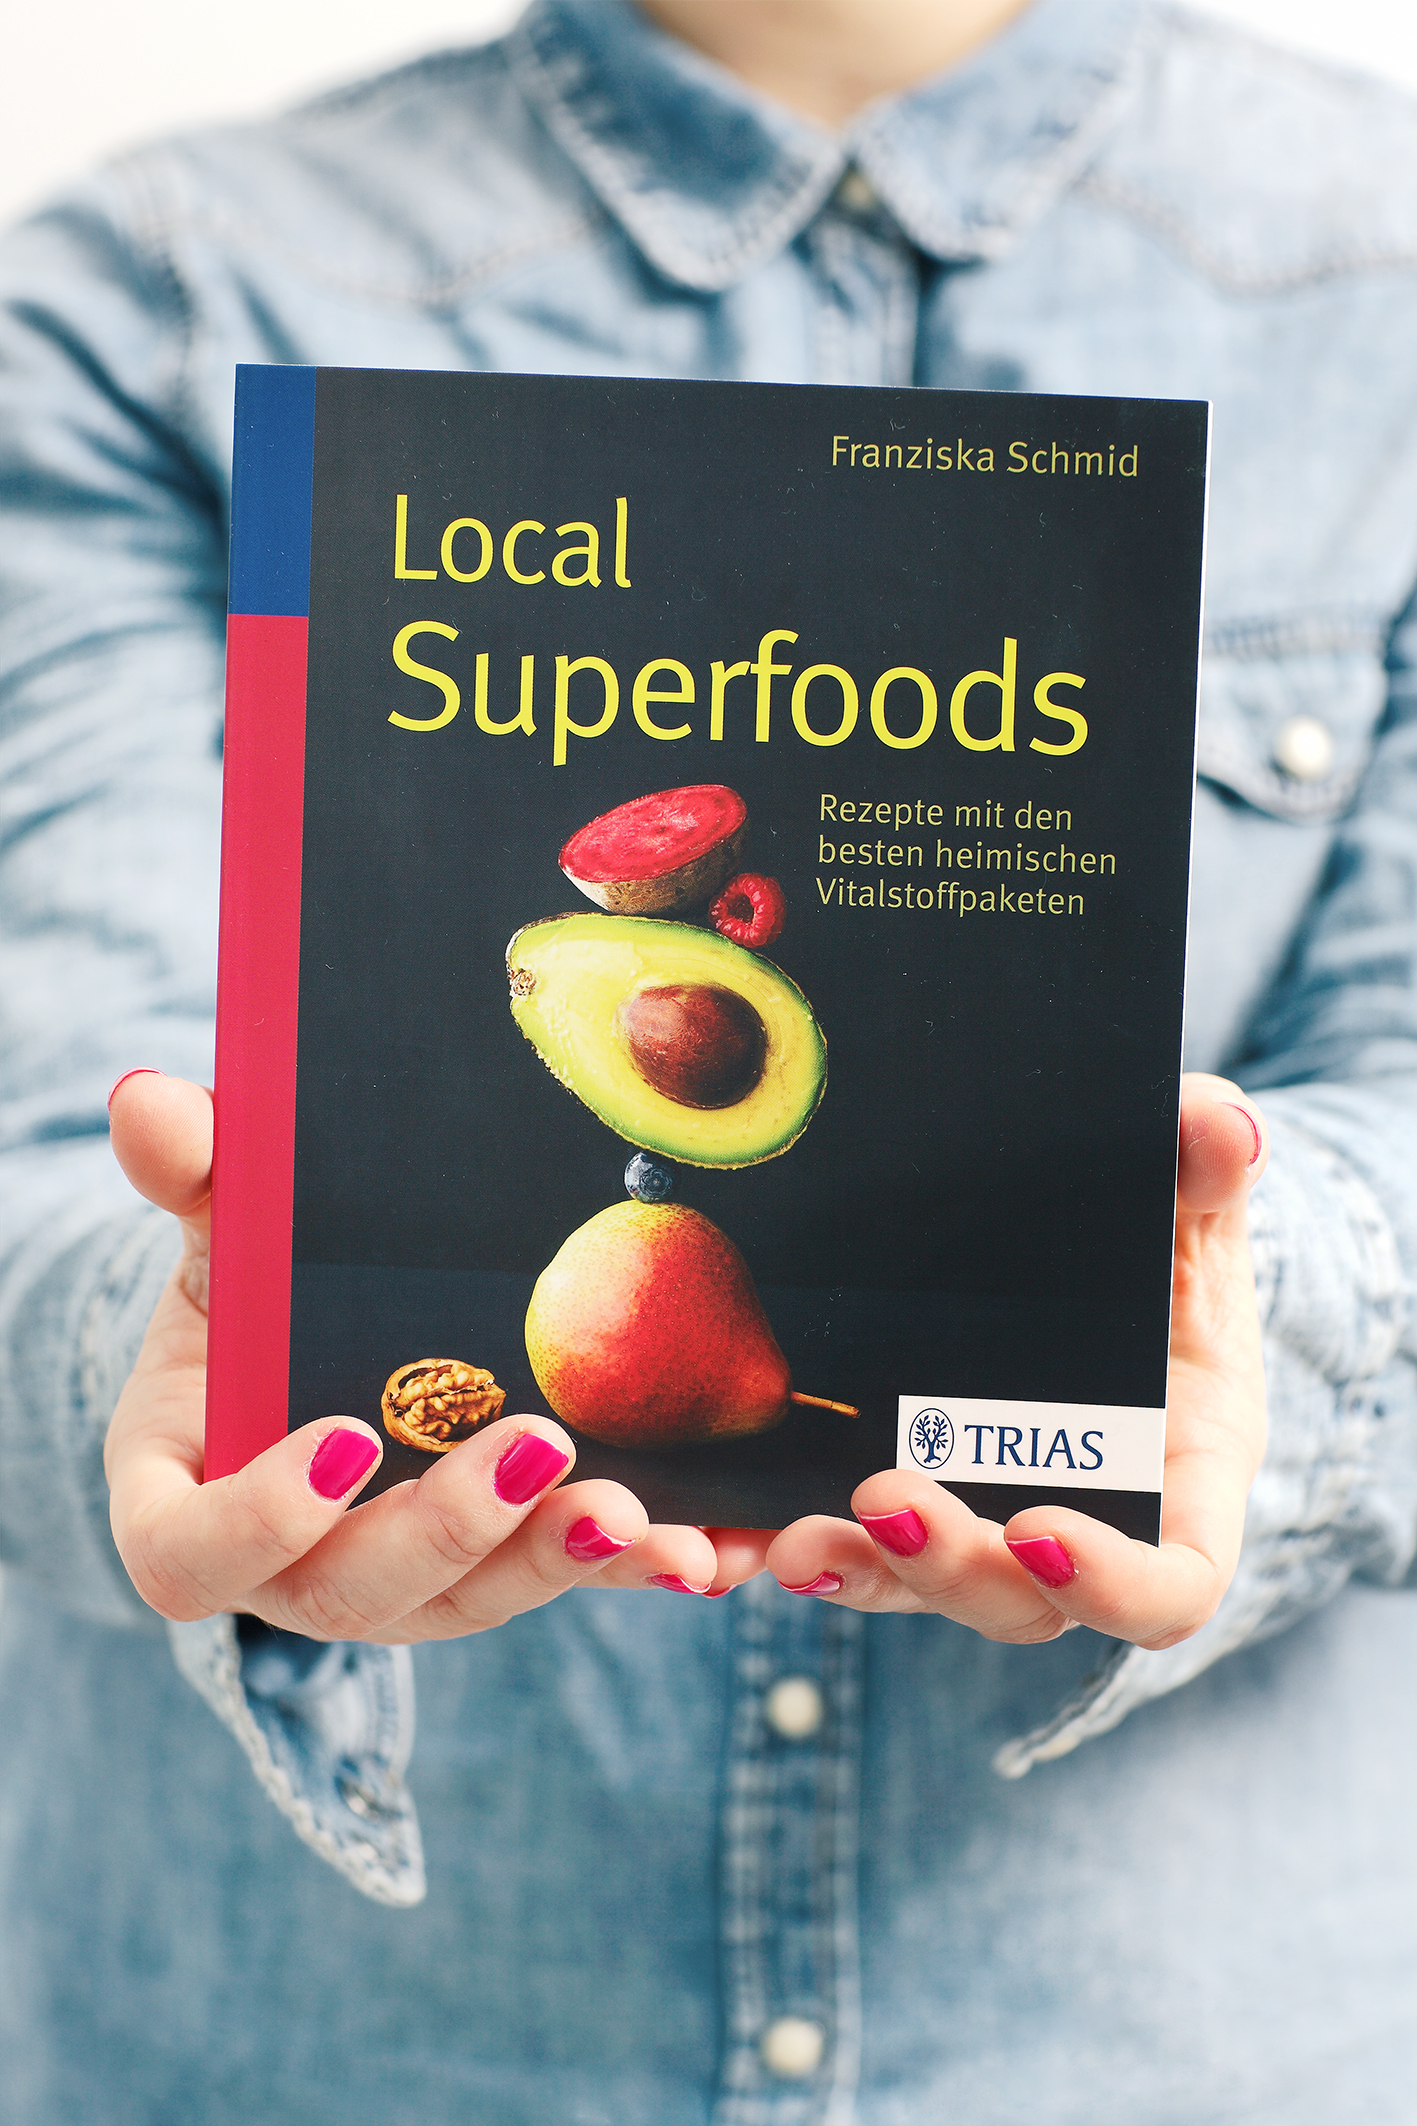 Local Superfoods Franziska Schmid I Veggie Love